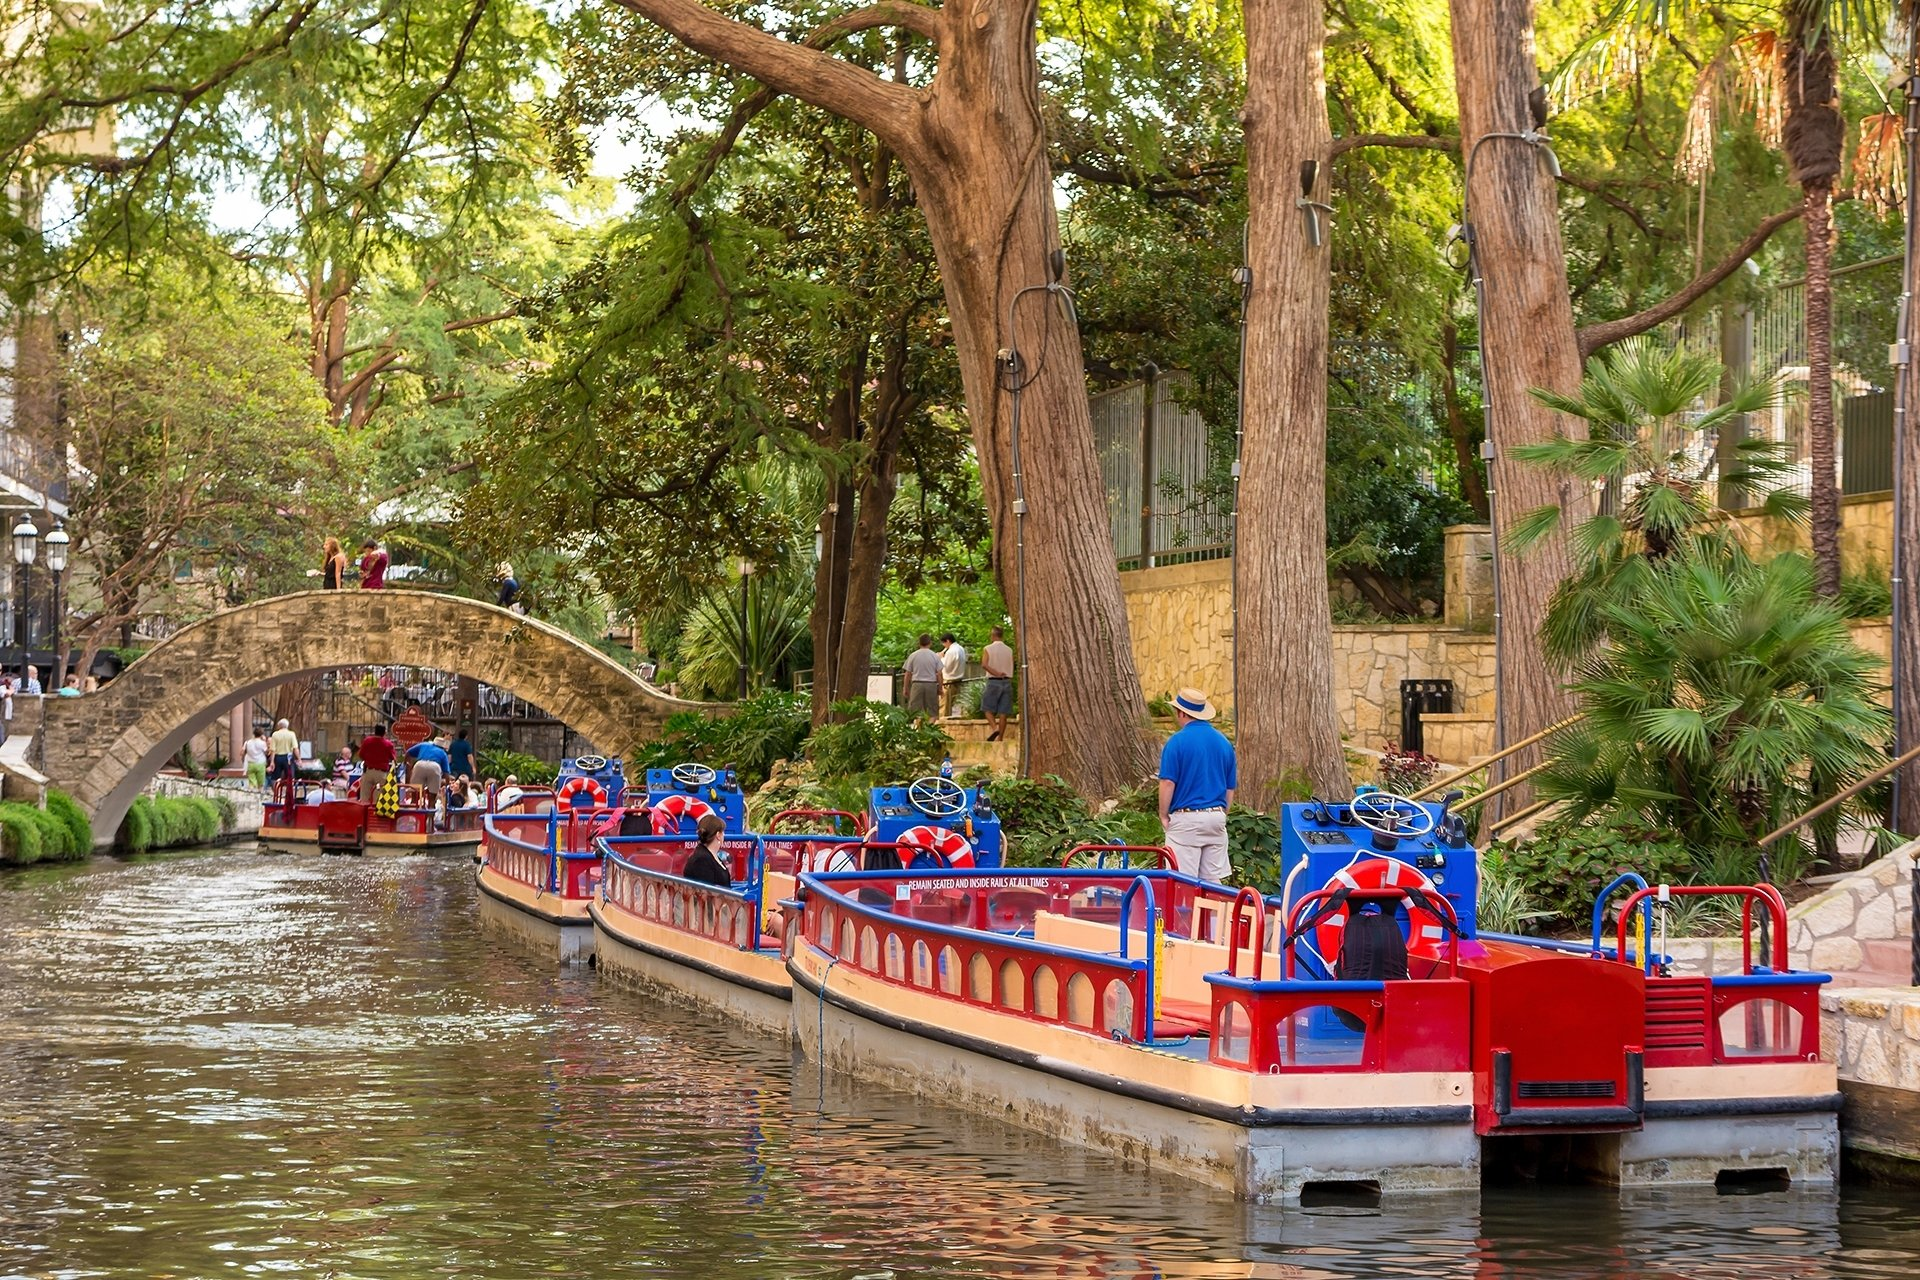 10 best texas family getaways & vacation spots - family vacation critic